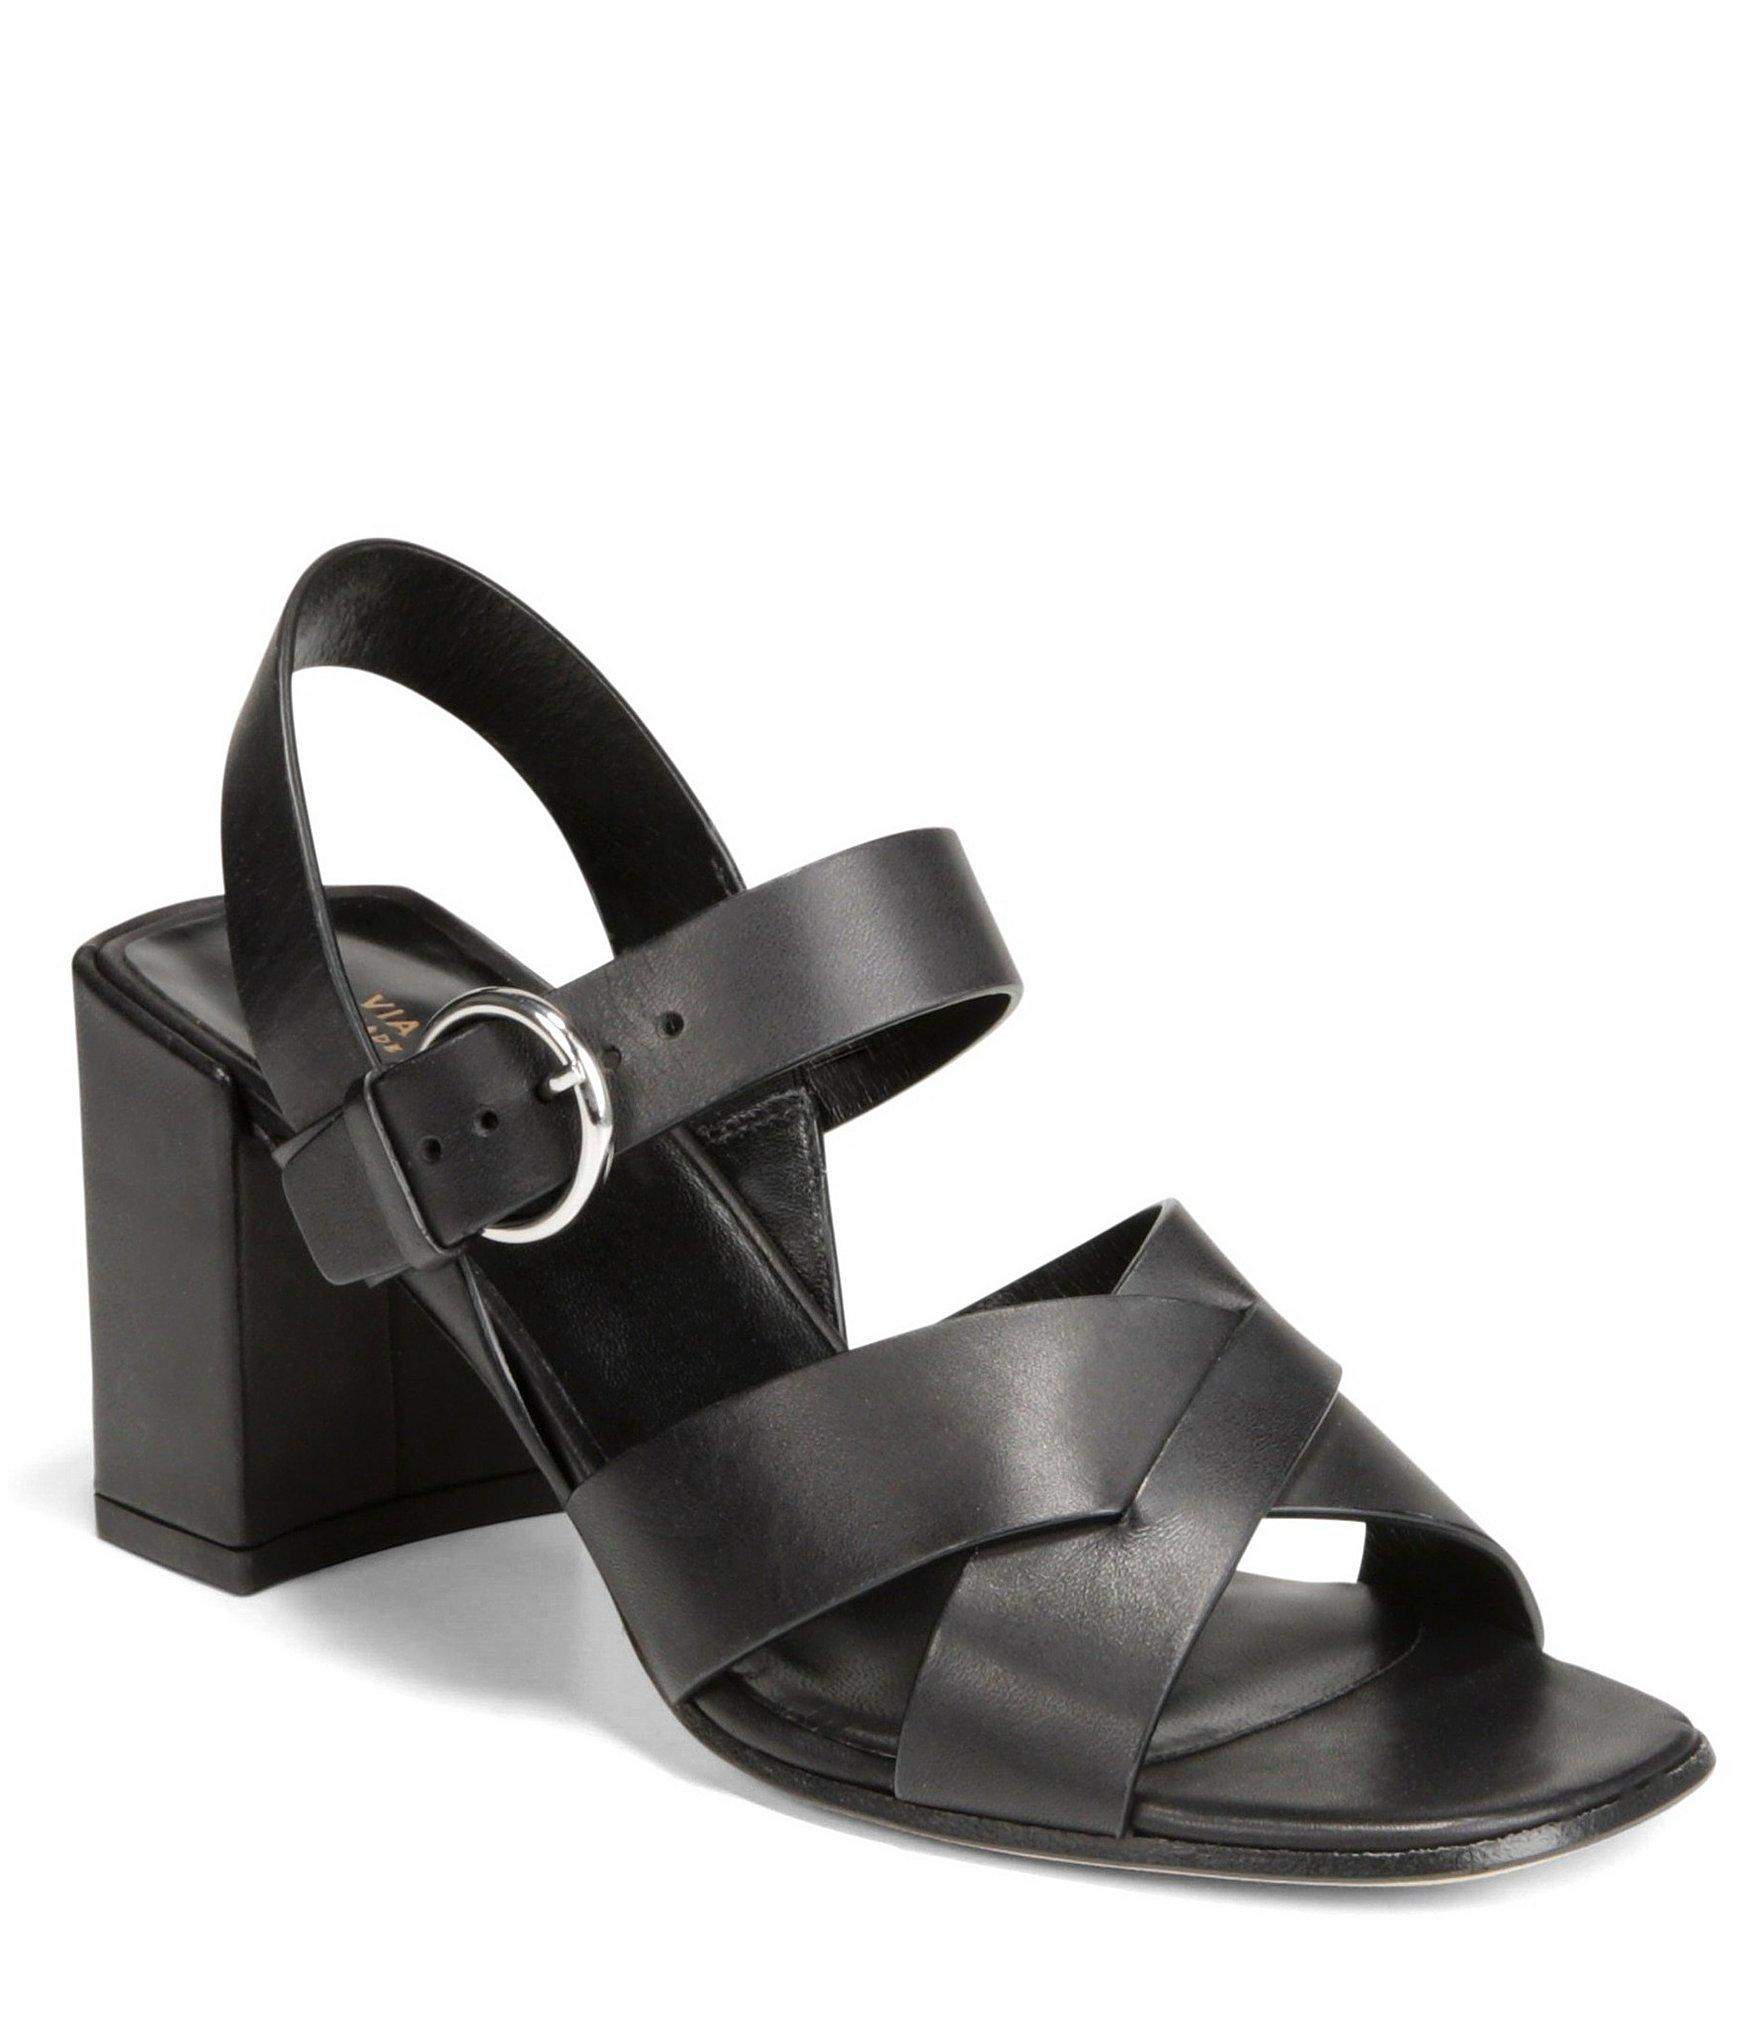 dac324b27b10 Lyst - Via Spiga Women s Opal Block Heel Sandals in Black